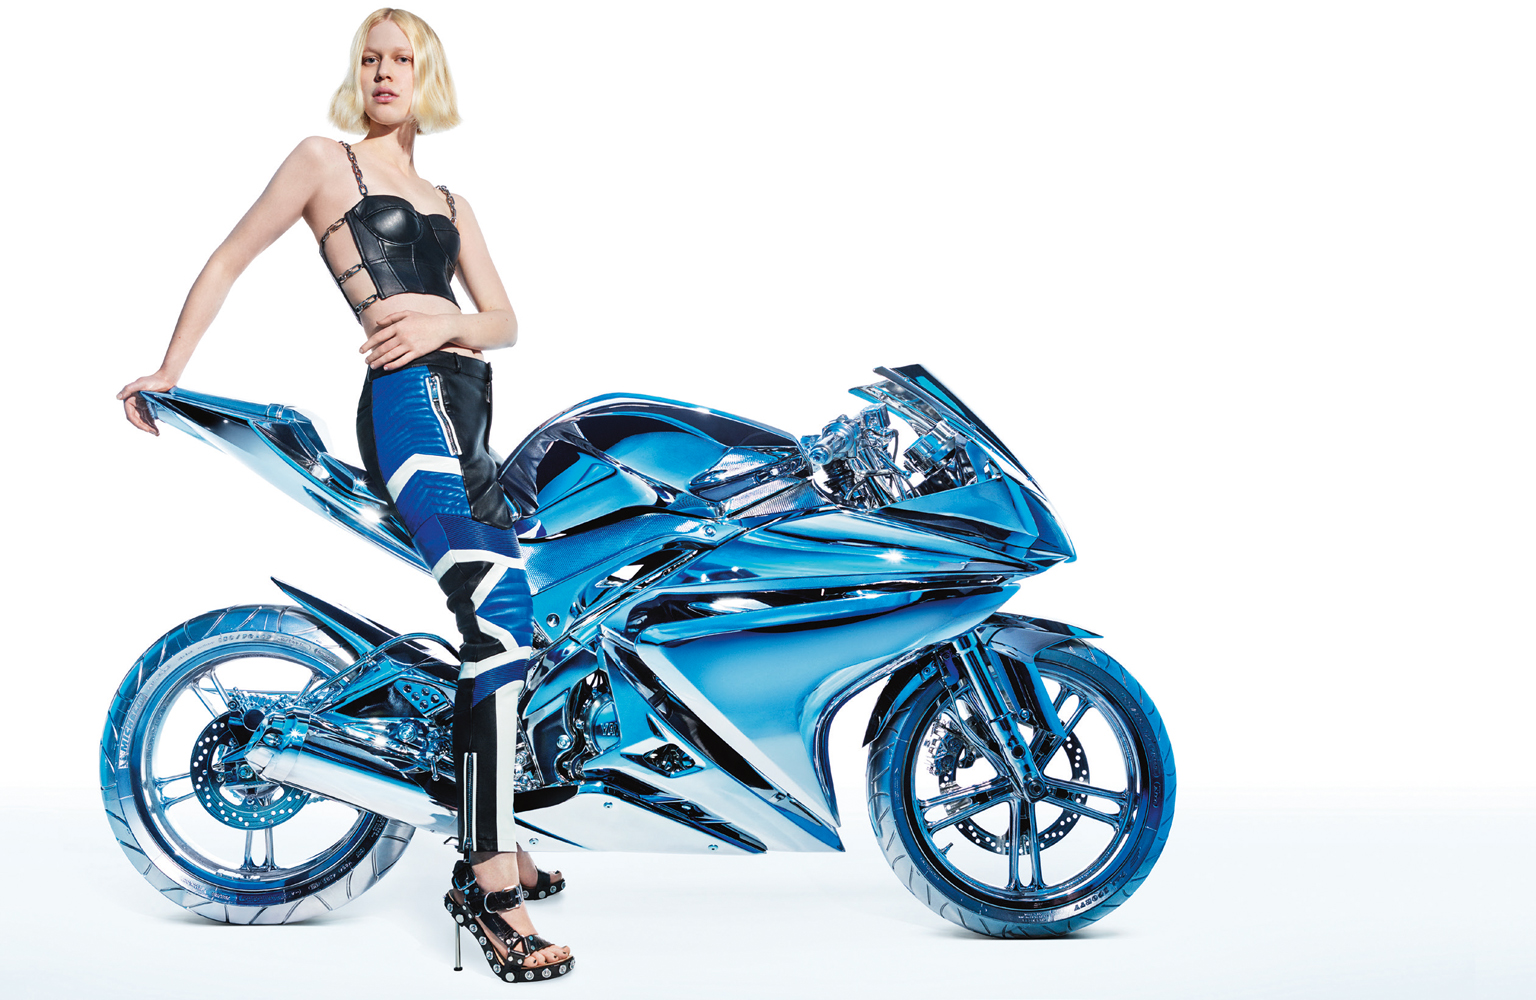 Blond Female Model Leatherjacket sitting on Chrome Motorcycle